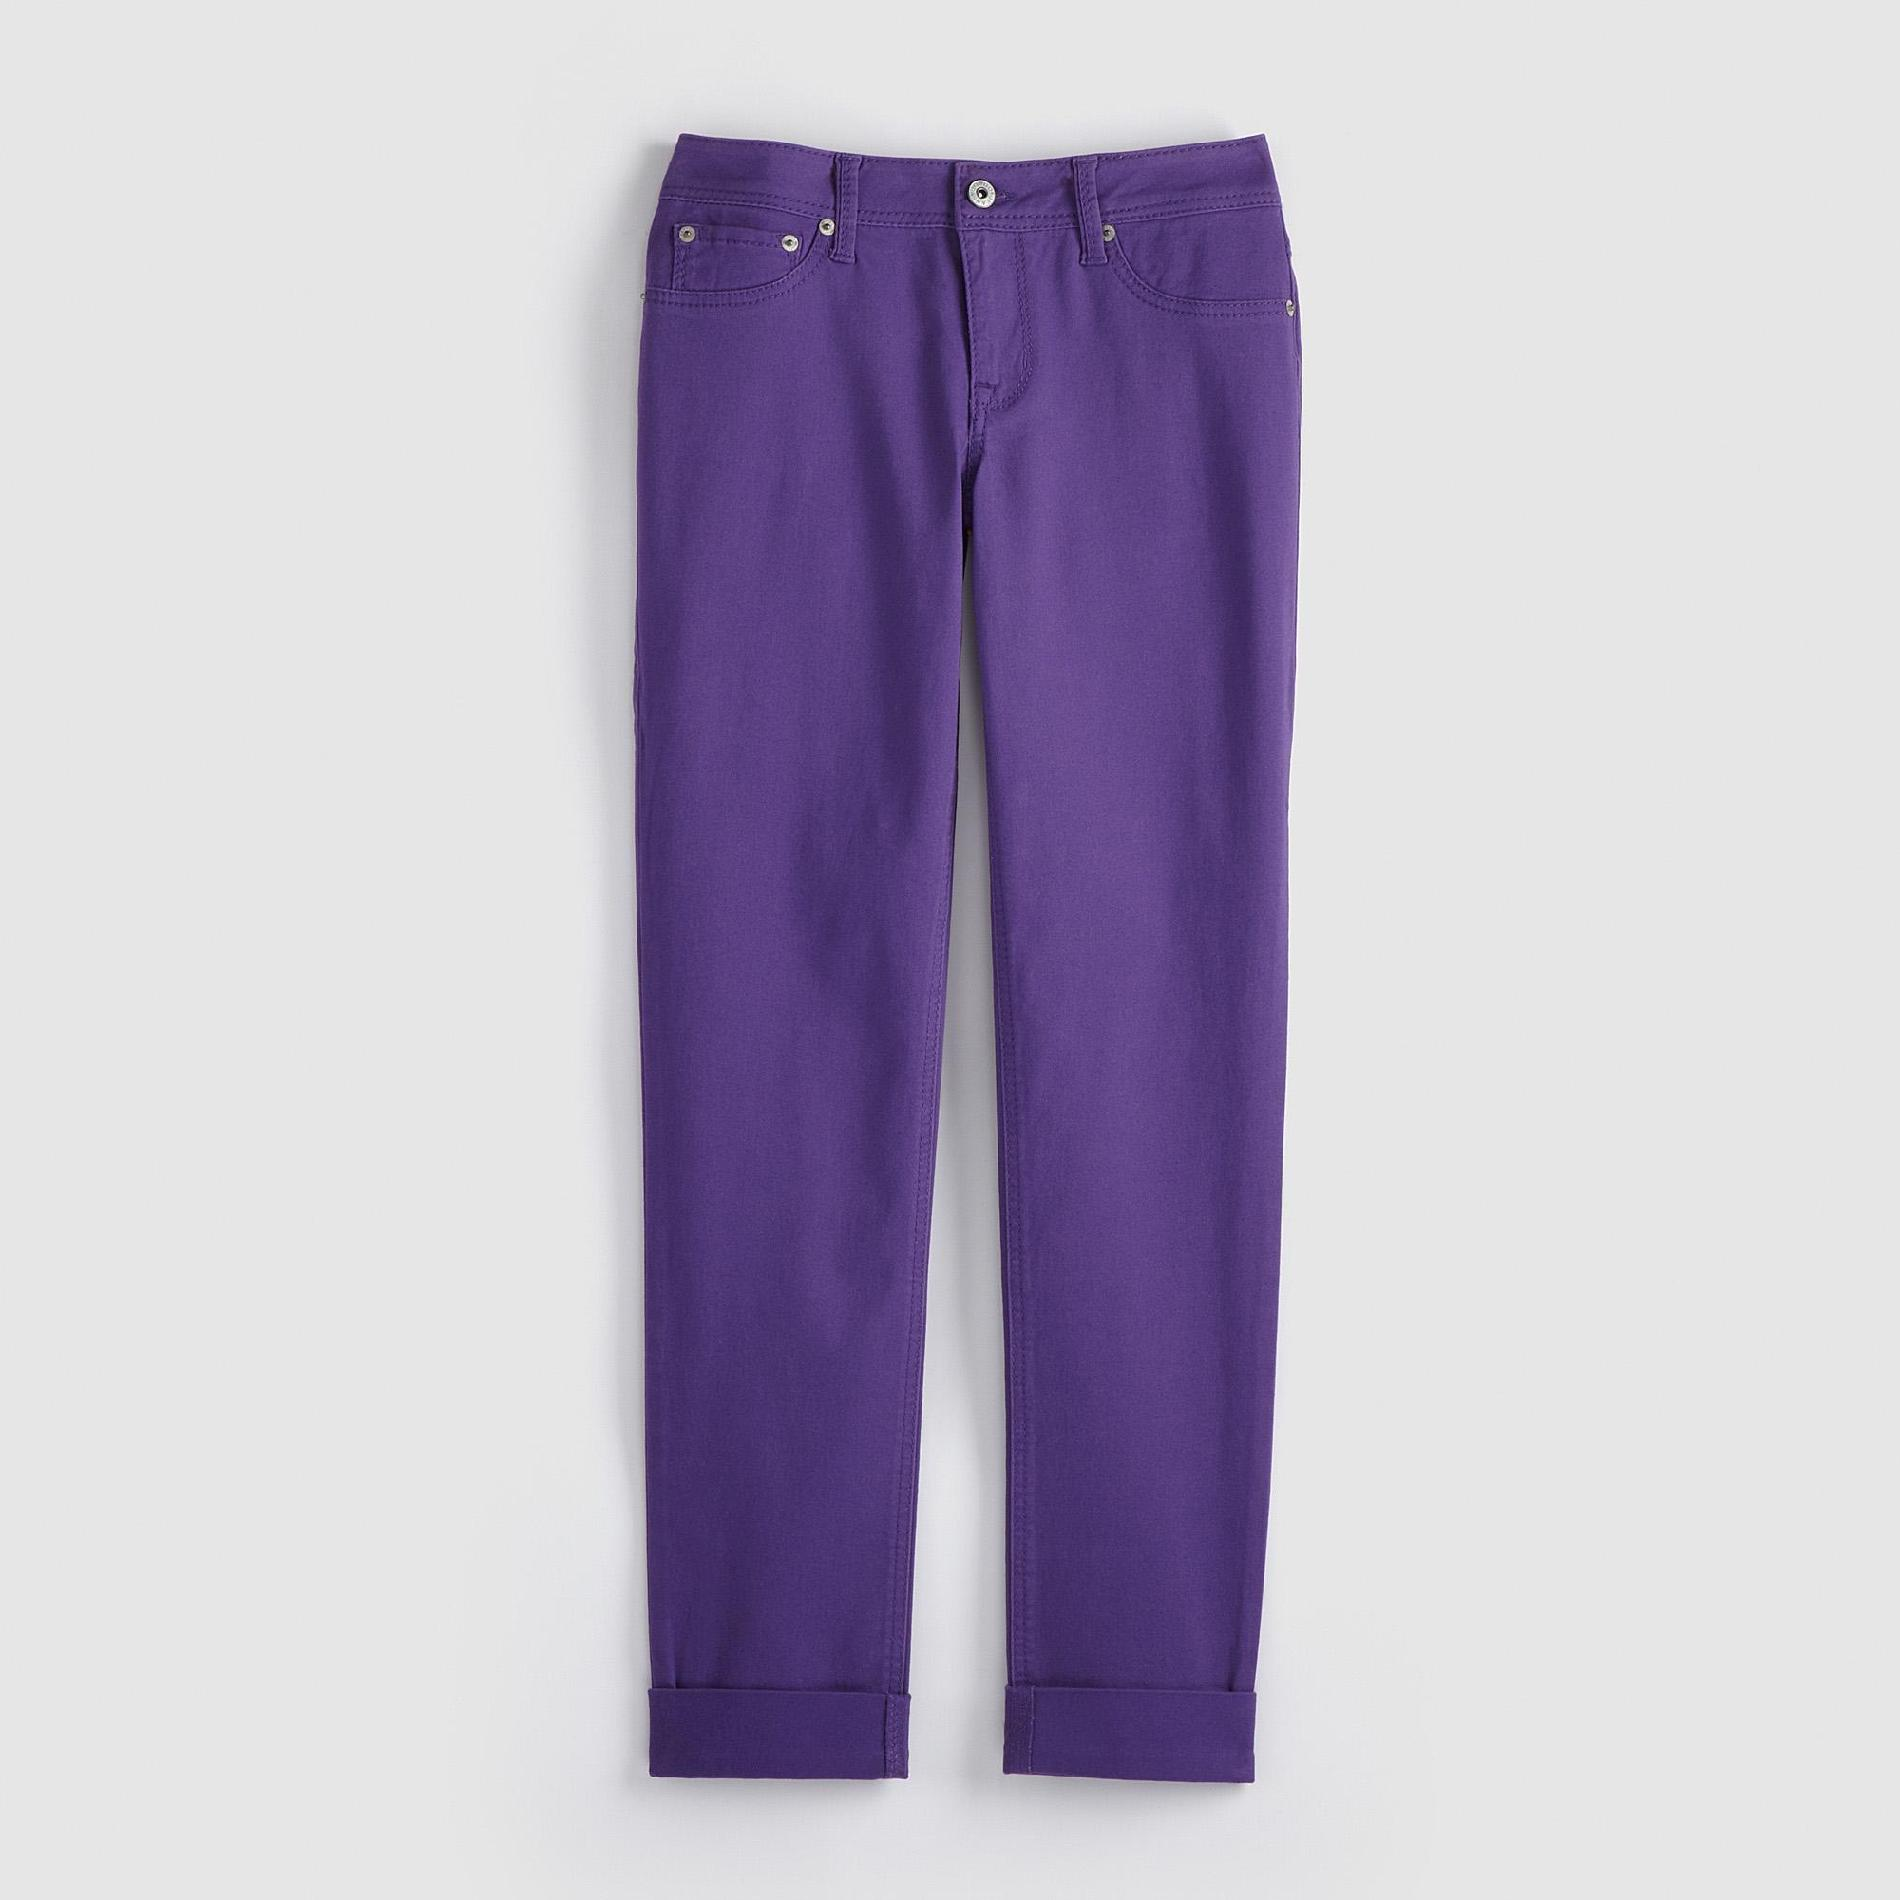 Bongo Junior's Skinny Ankle Pants at Sears.com